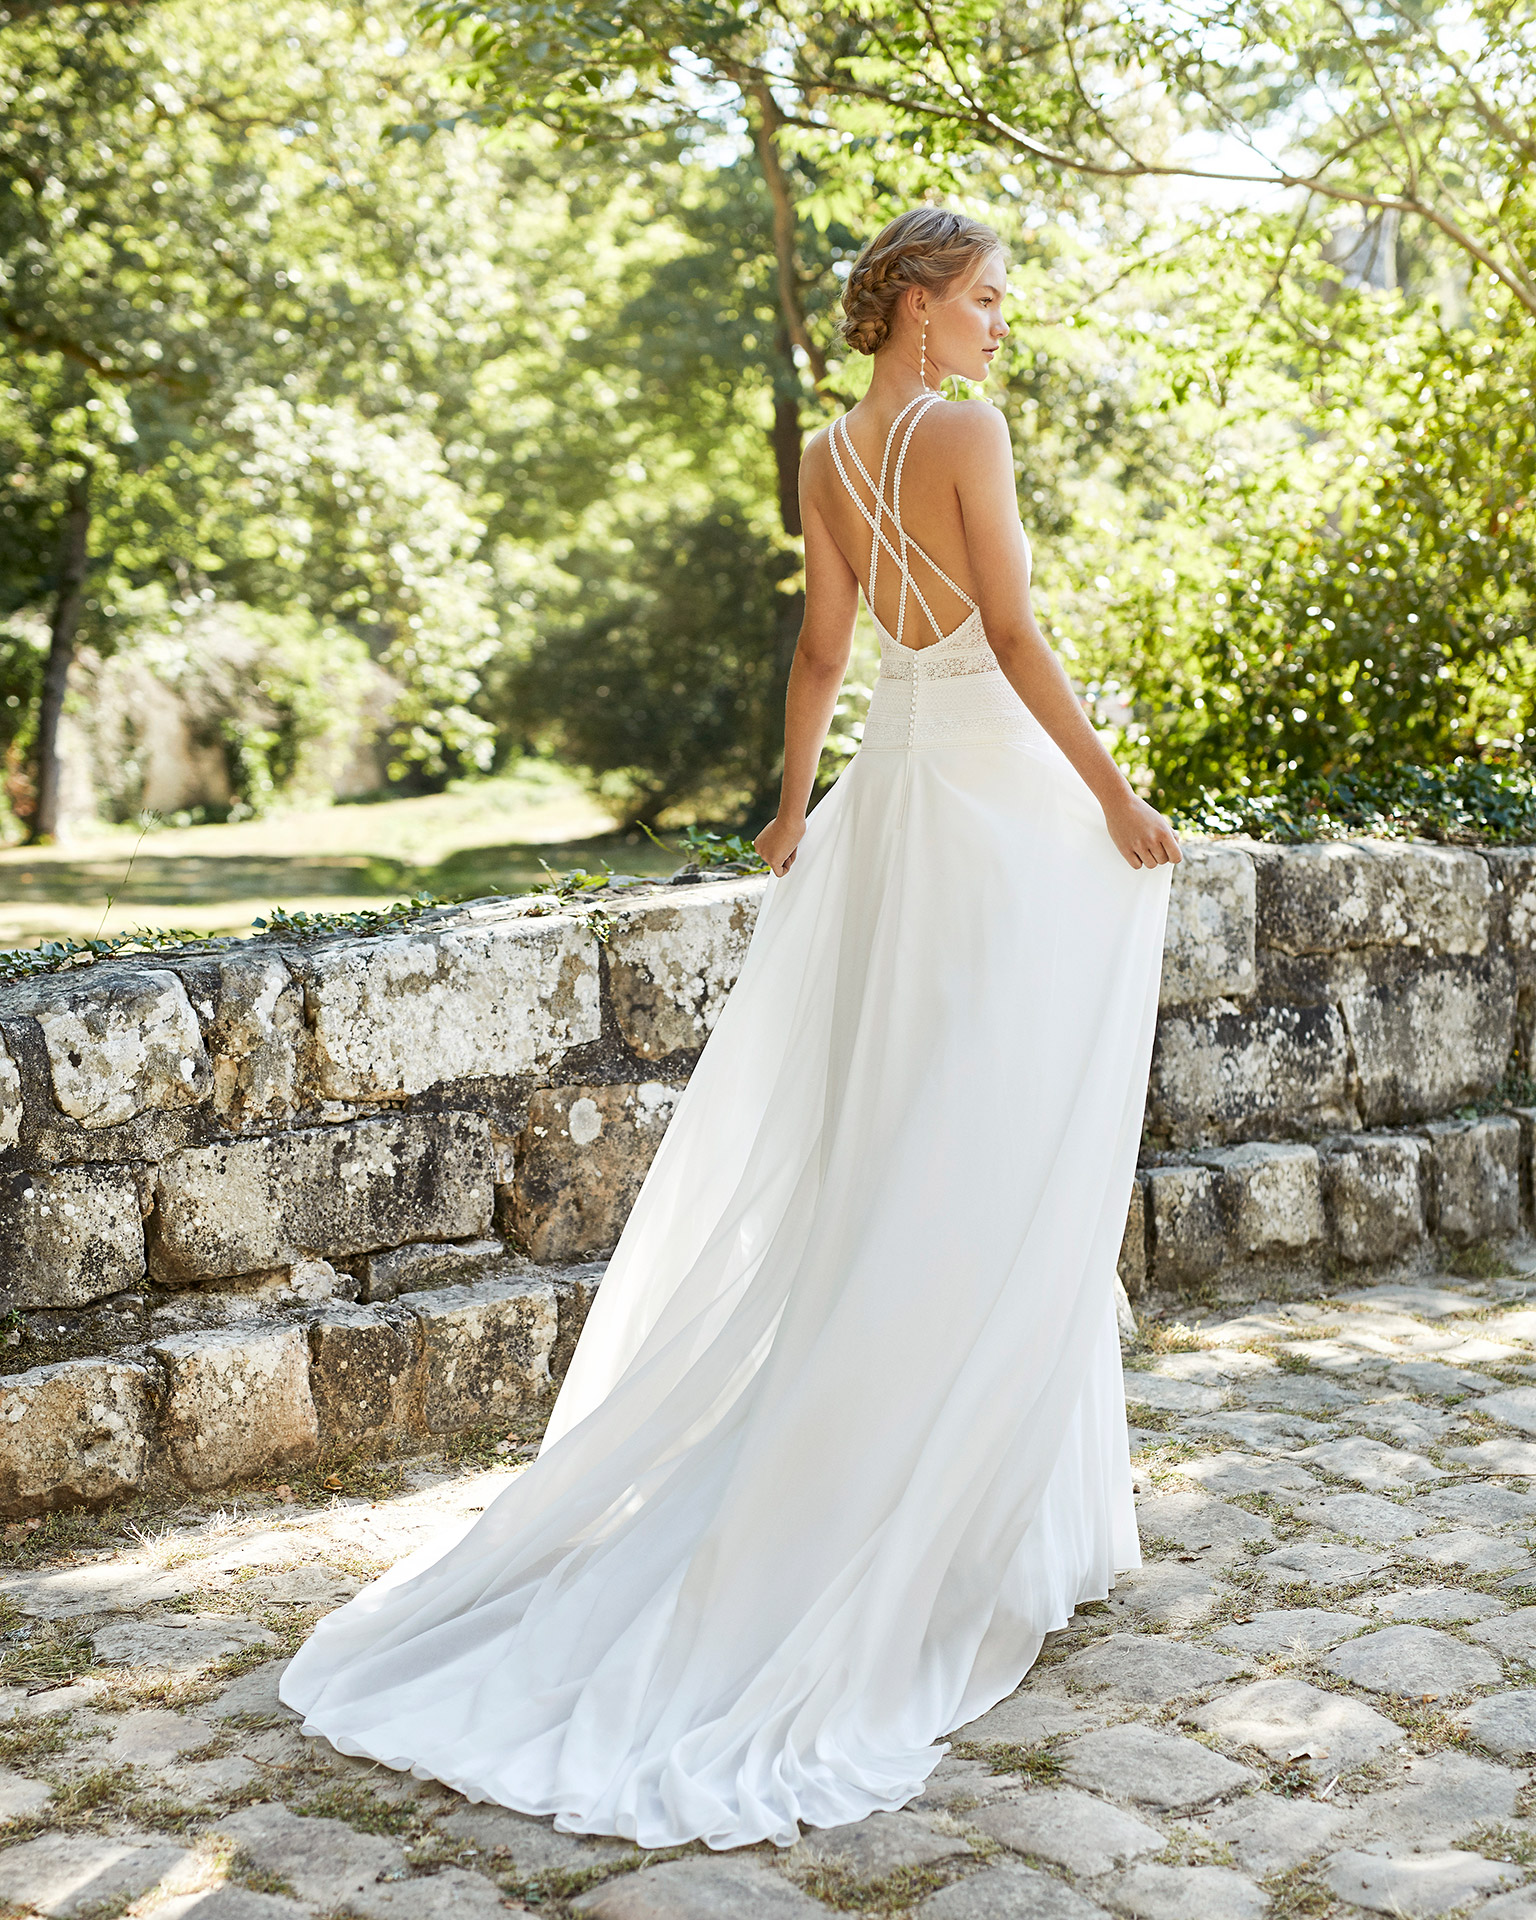 Wedding dress in chiffon. Closed neckline in lace, with shoulder straps and low back with crossover shoulder straps. 2021 ALMANOVIA Collection.